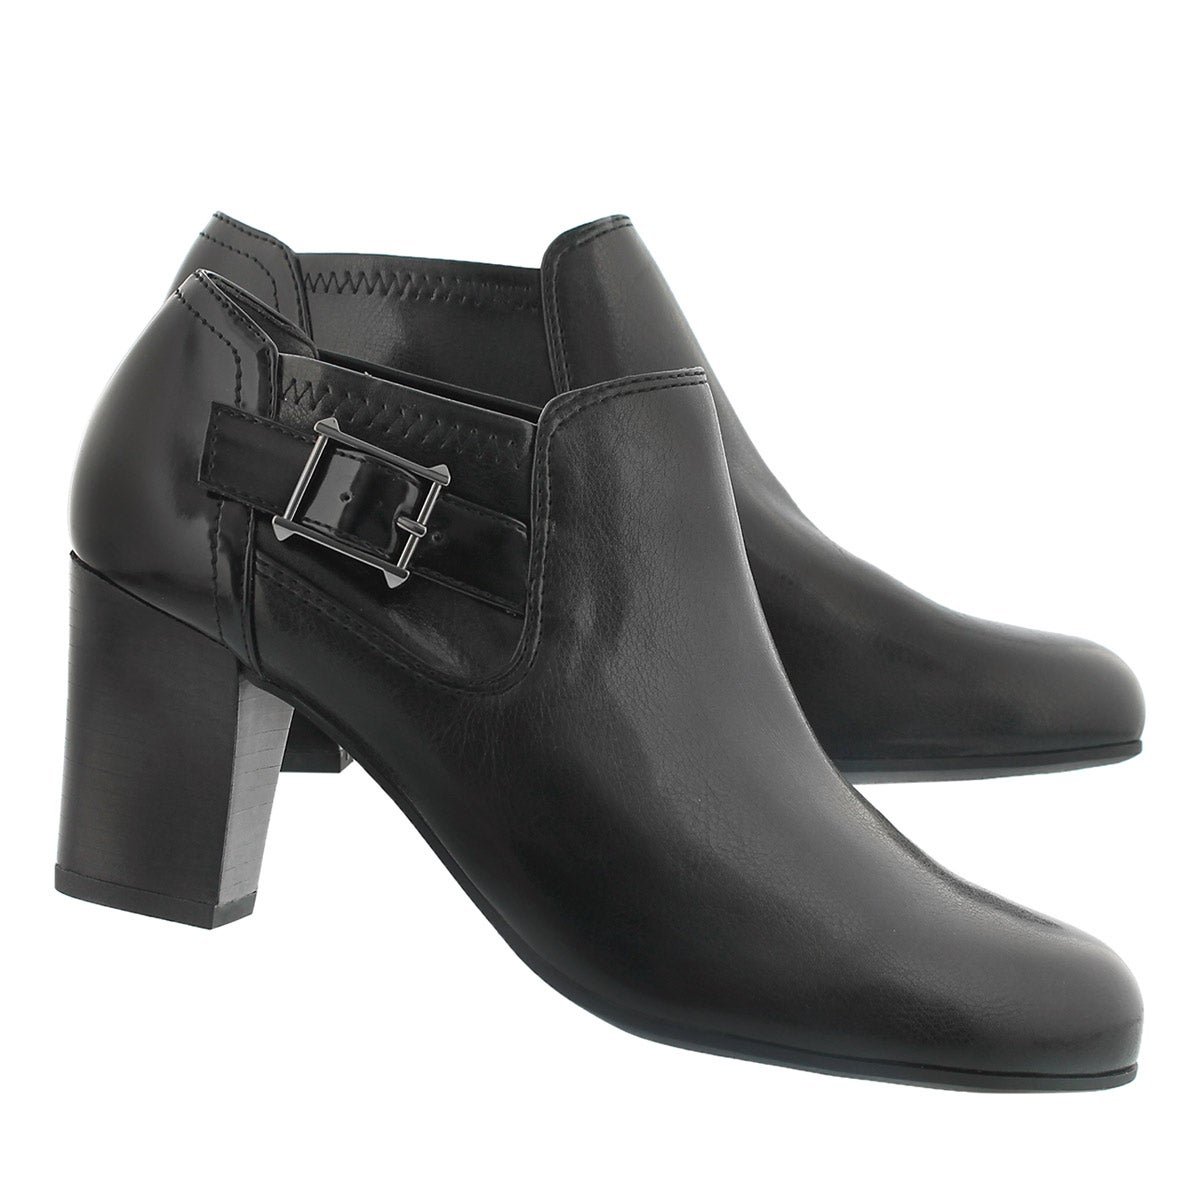 Lds Rapport black buckle dress heel